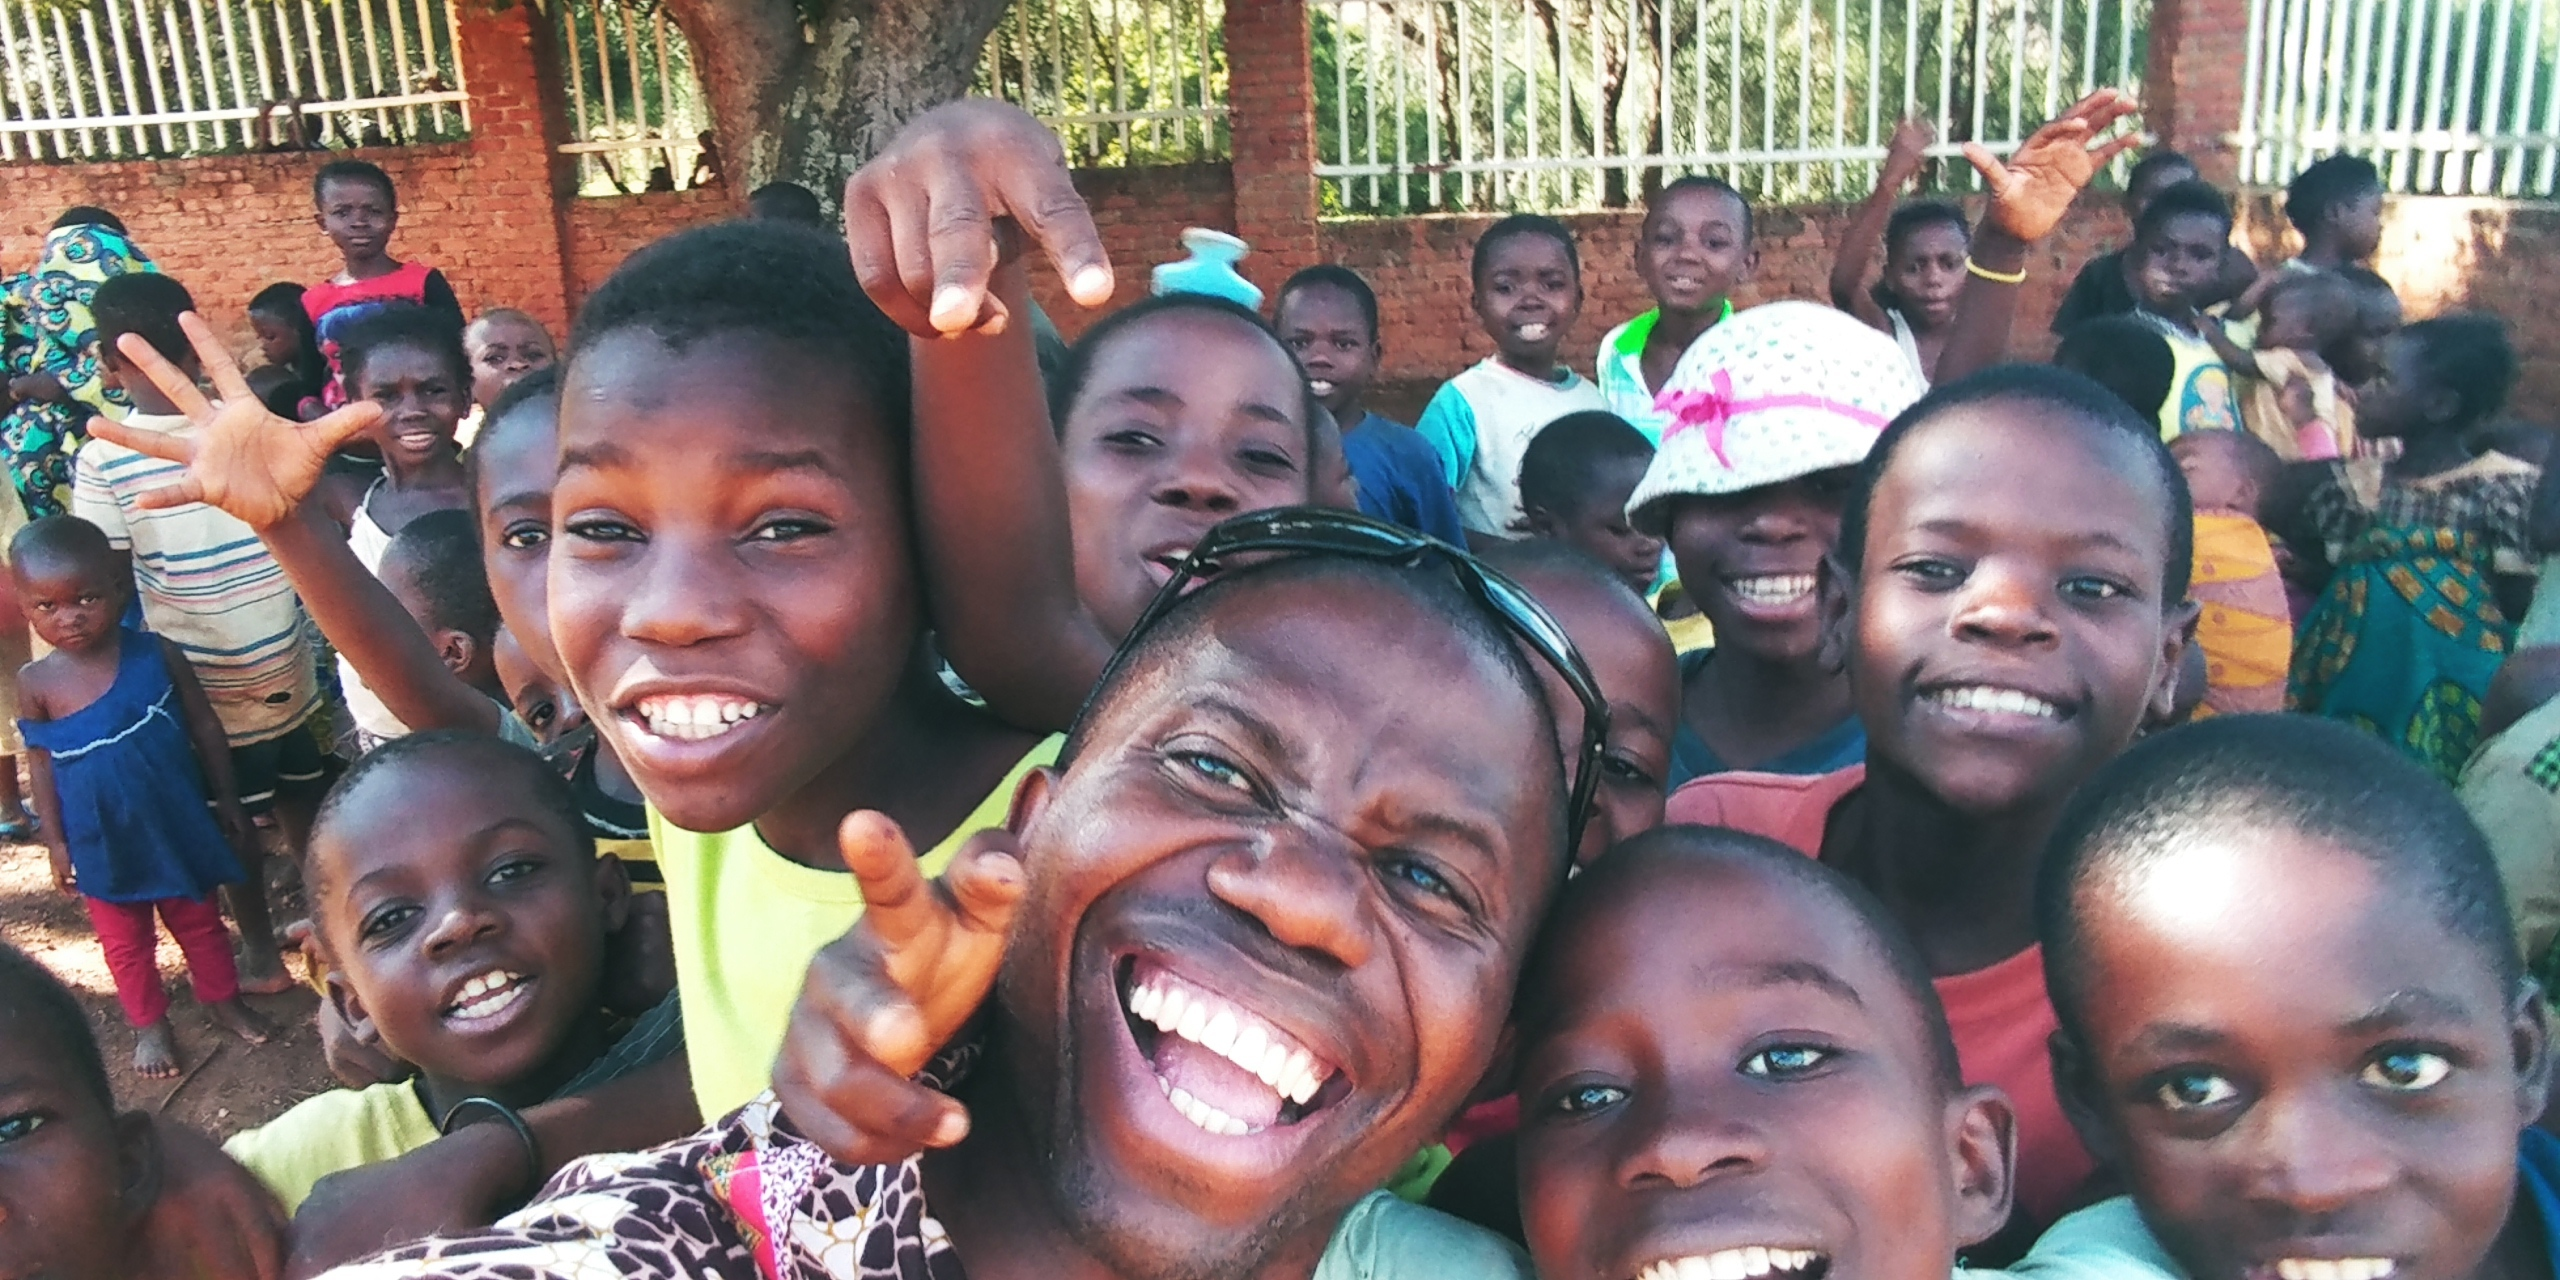 Msenwa Oliver and some of the children he works with, gathered for a selfie.